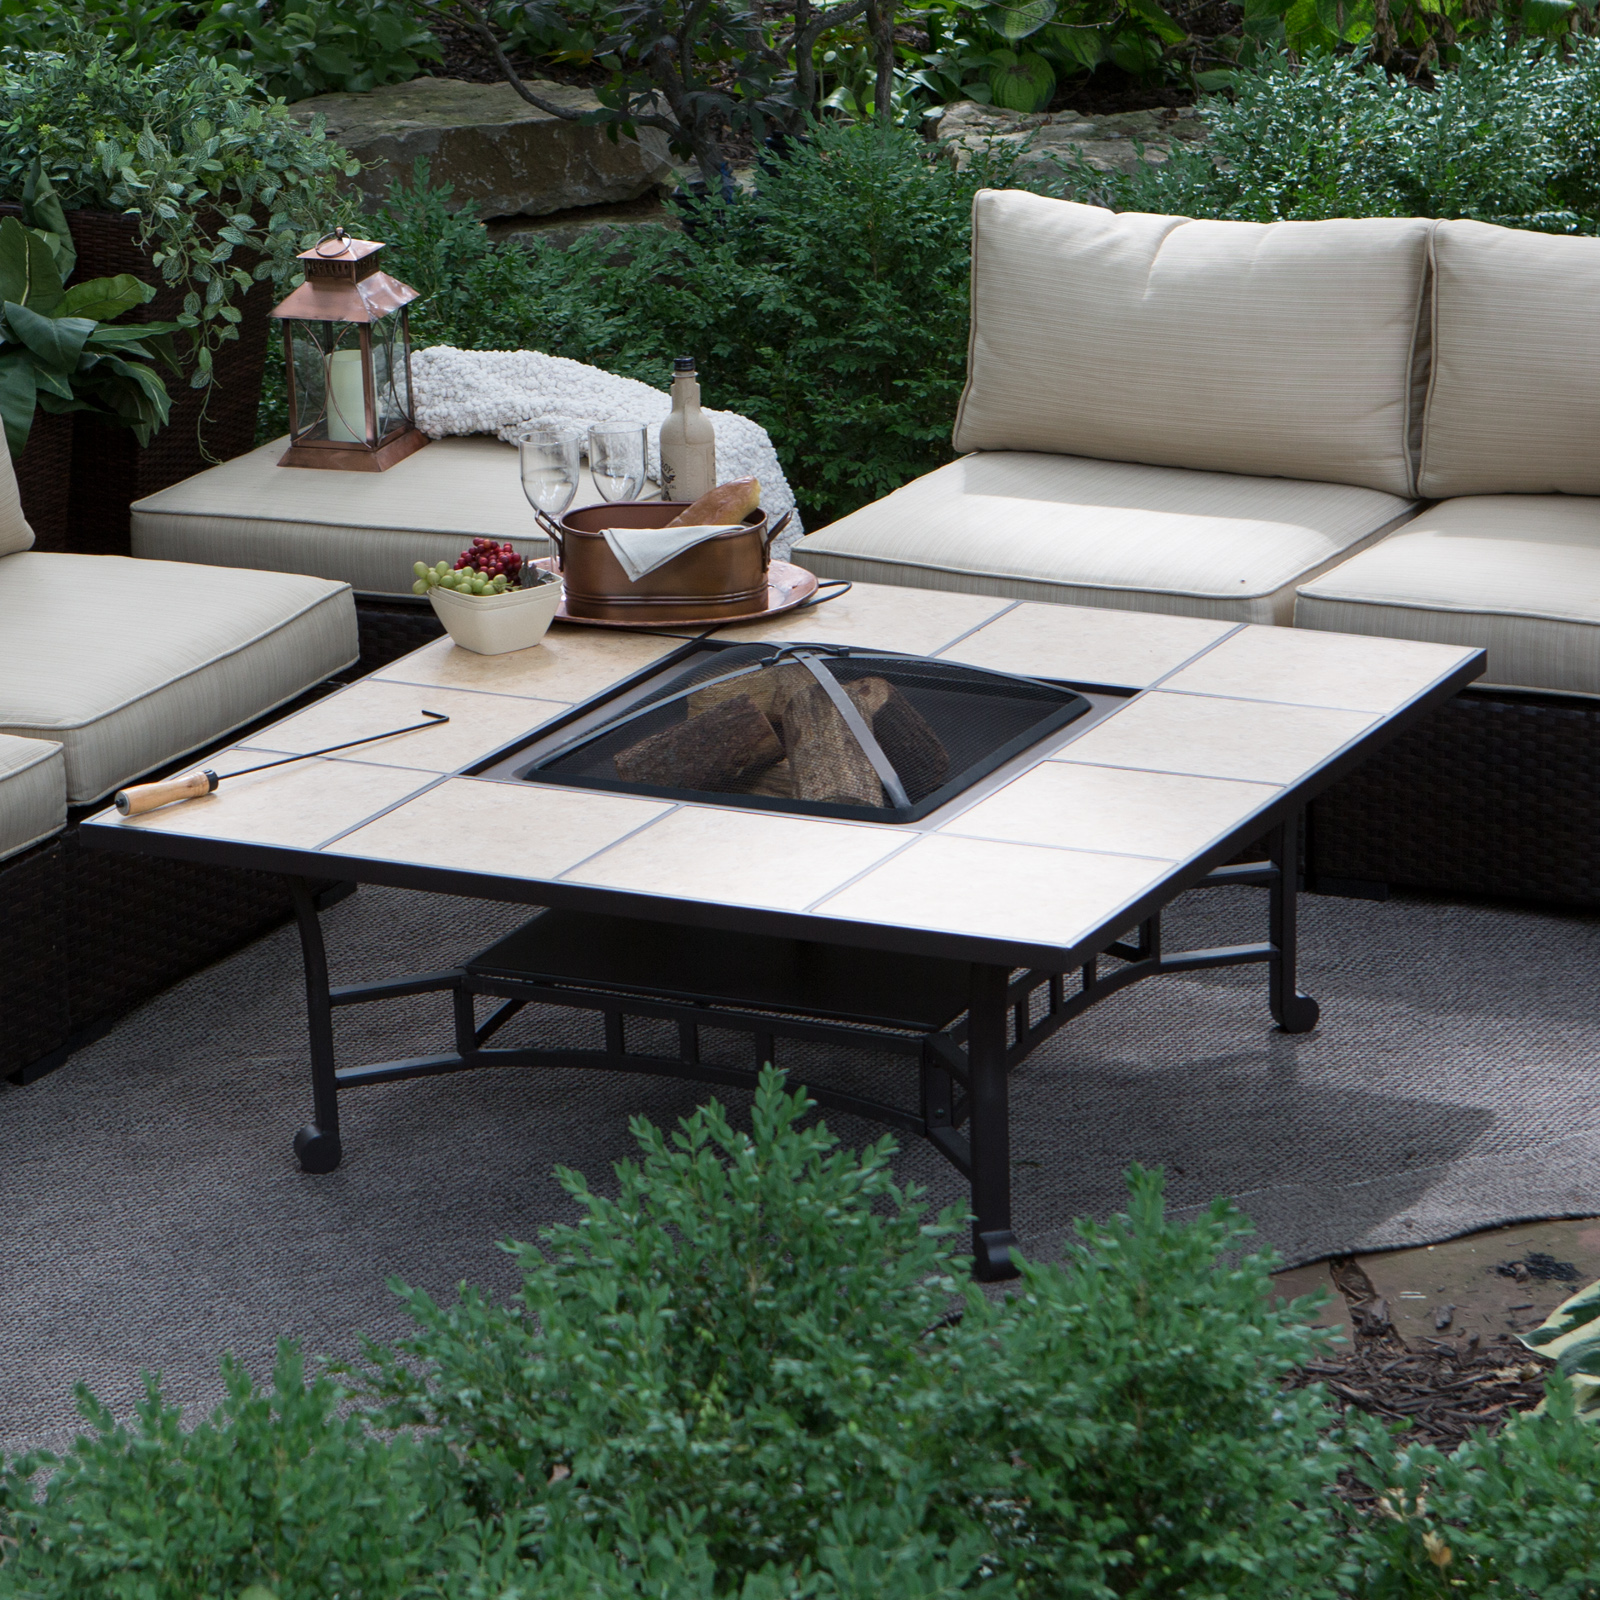 Outdoor Square Tile Convertible Fire Pit Table Cover